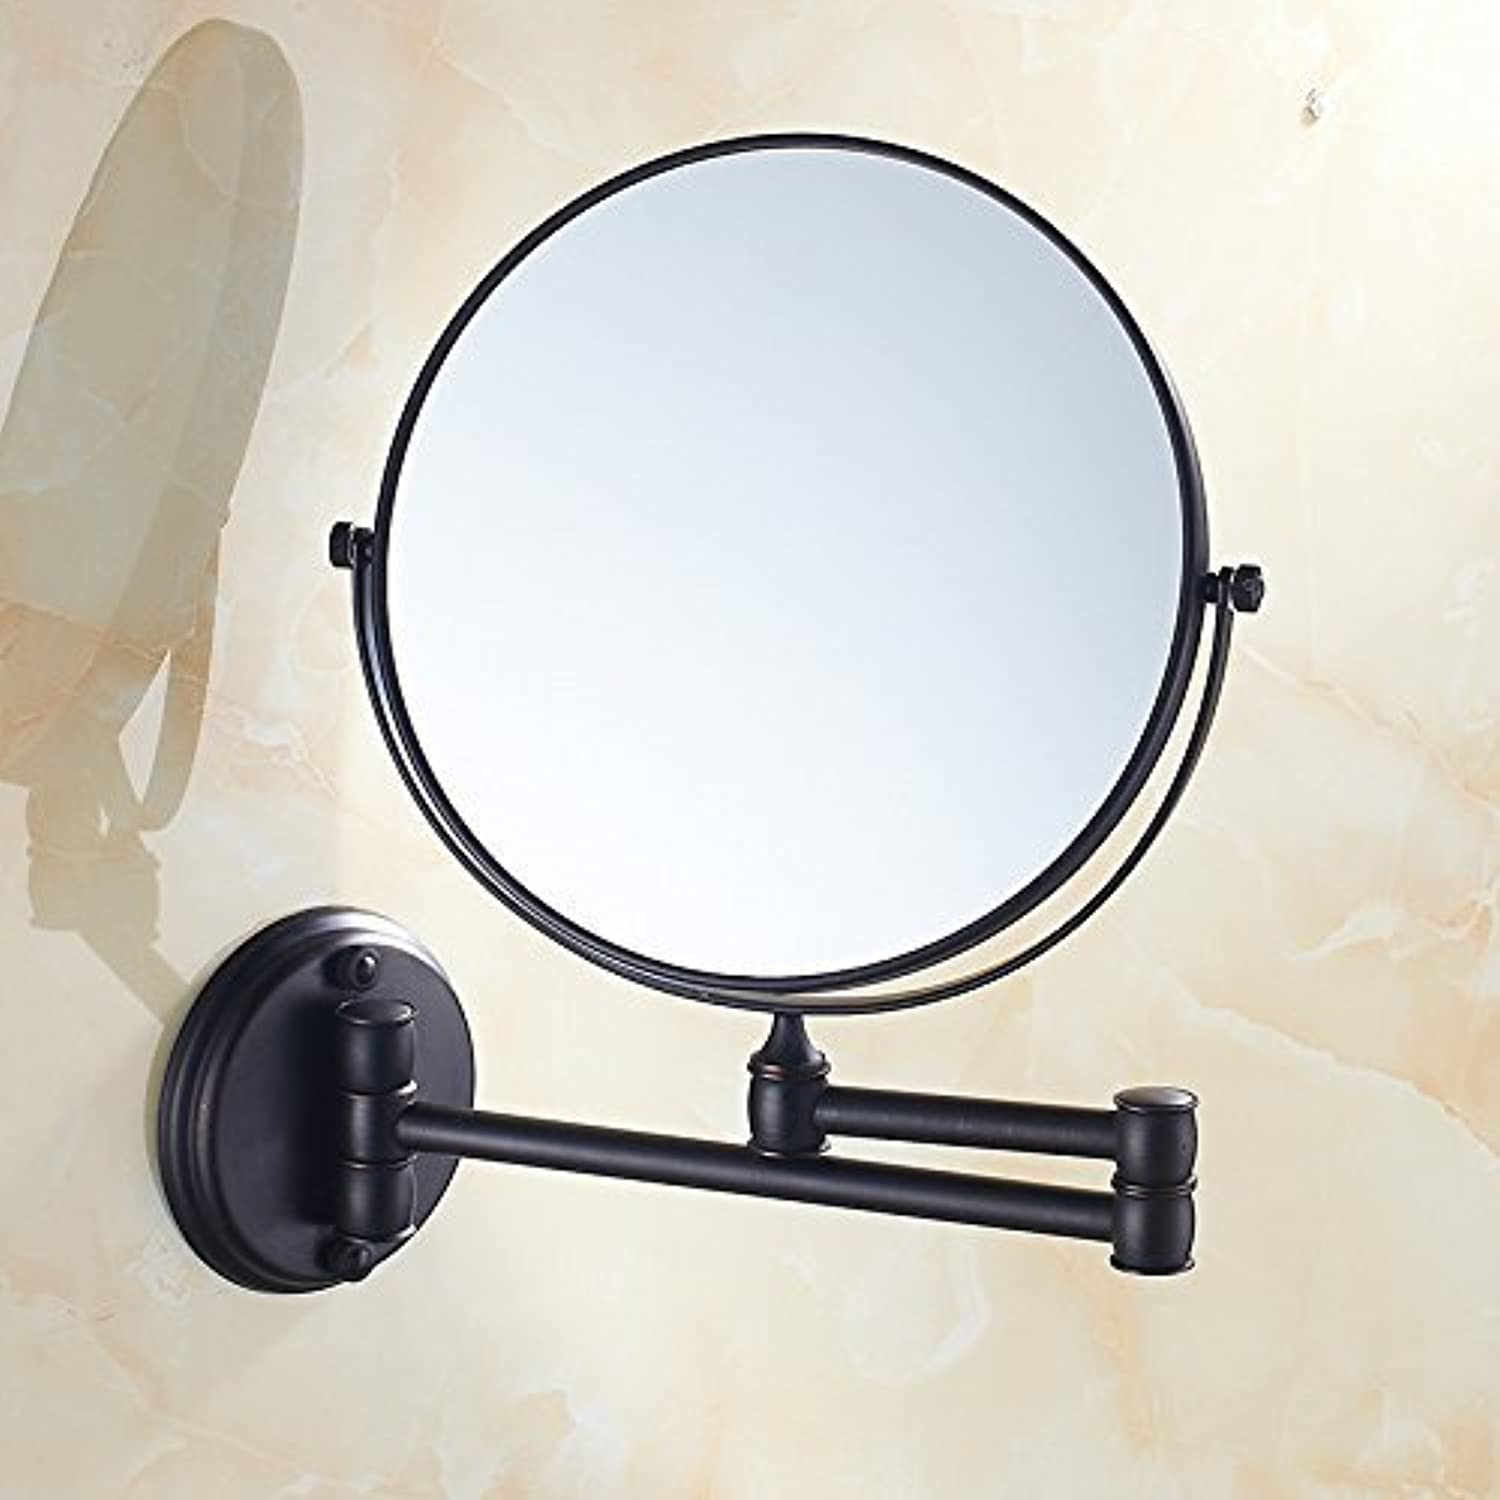 Bathroom Bathroom Mirror LED Light gold Folding Mirror with Dual face Former Mirror of The Expansion, 8-inch Black,Antique Furniture